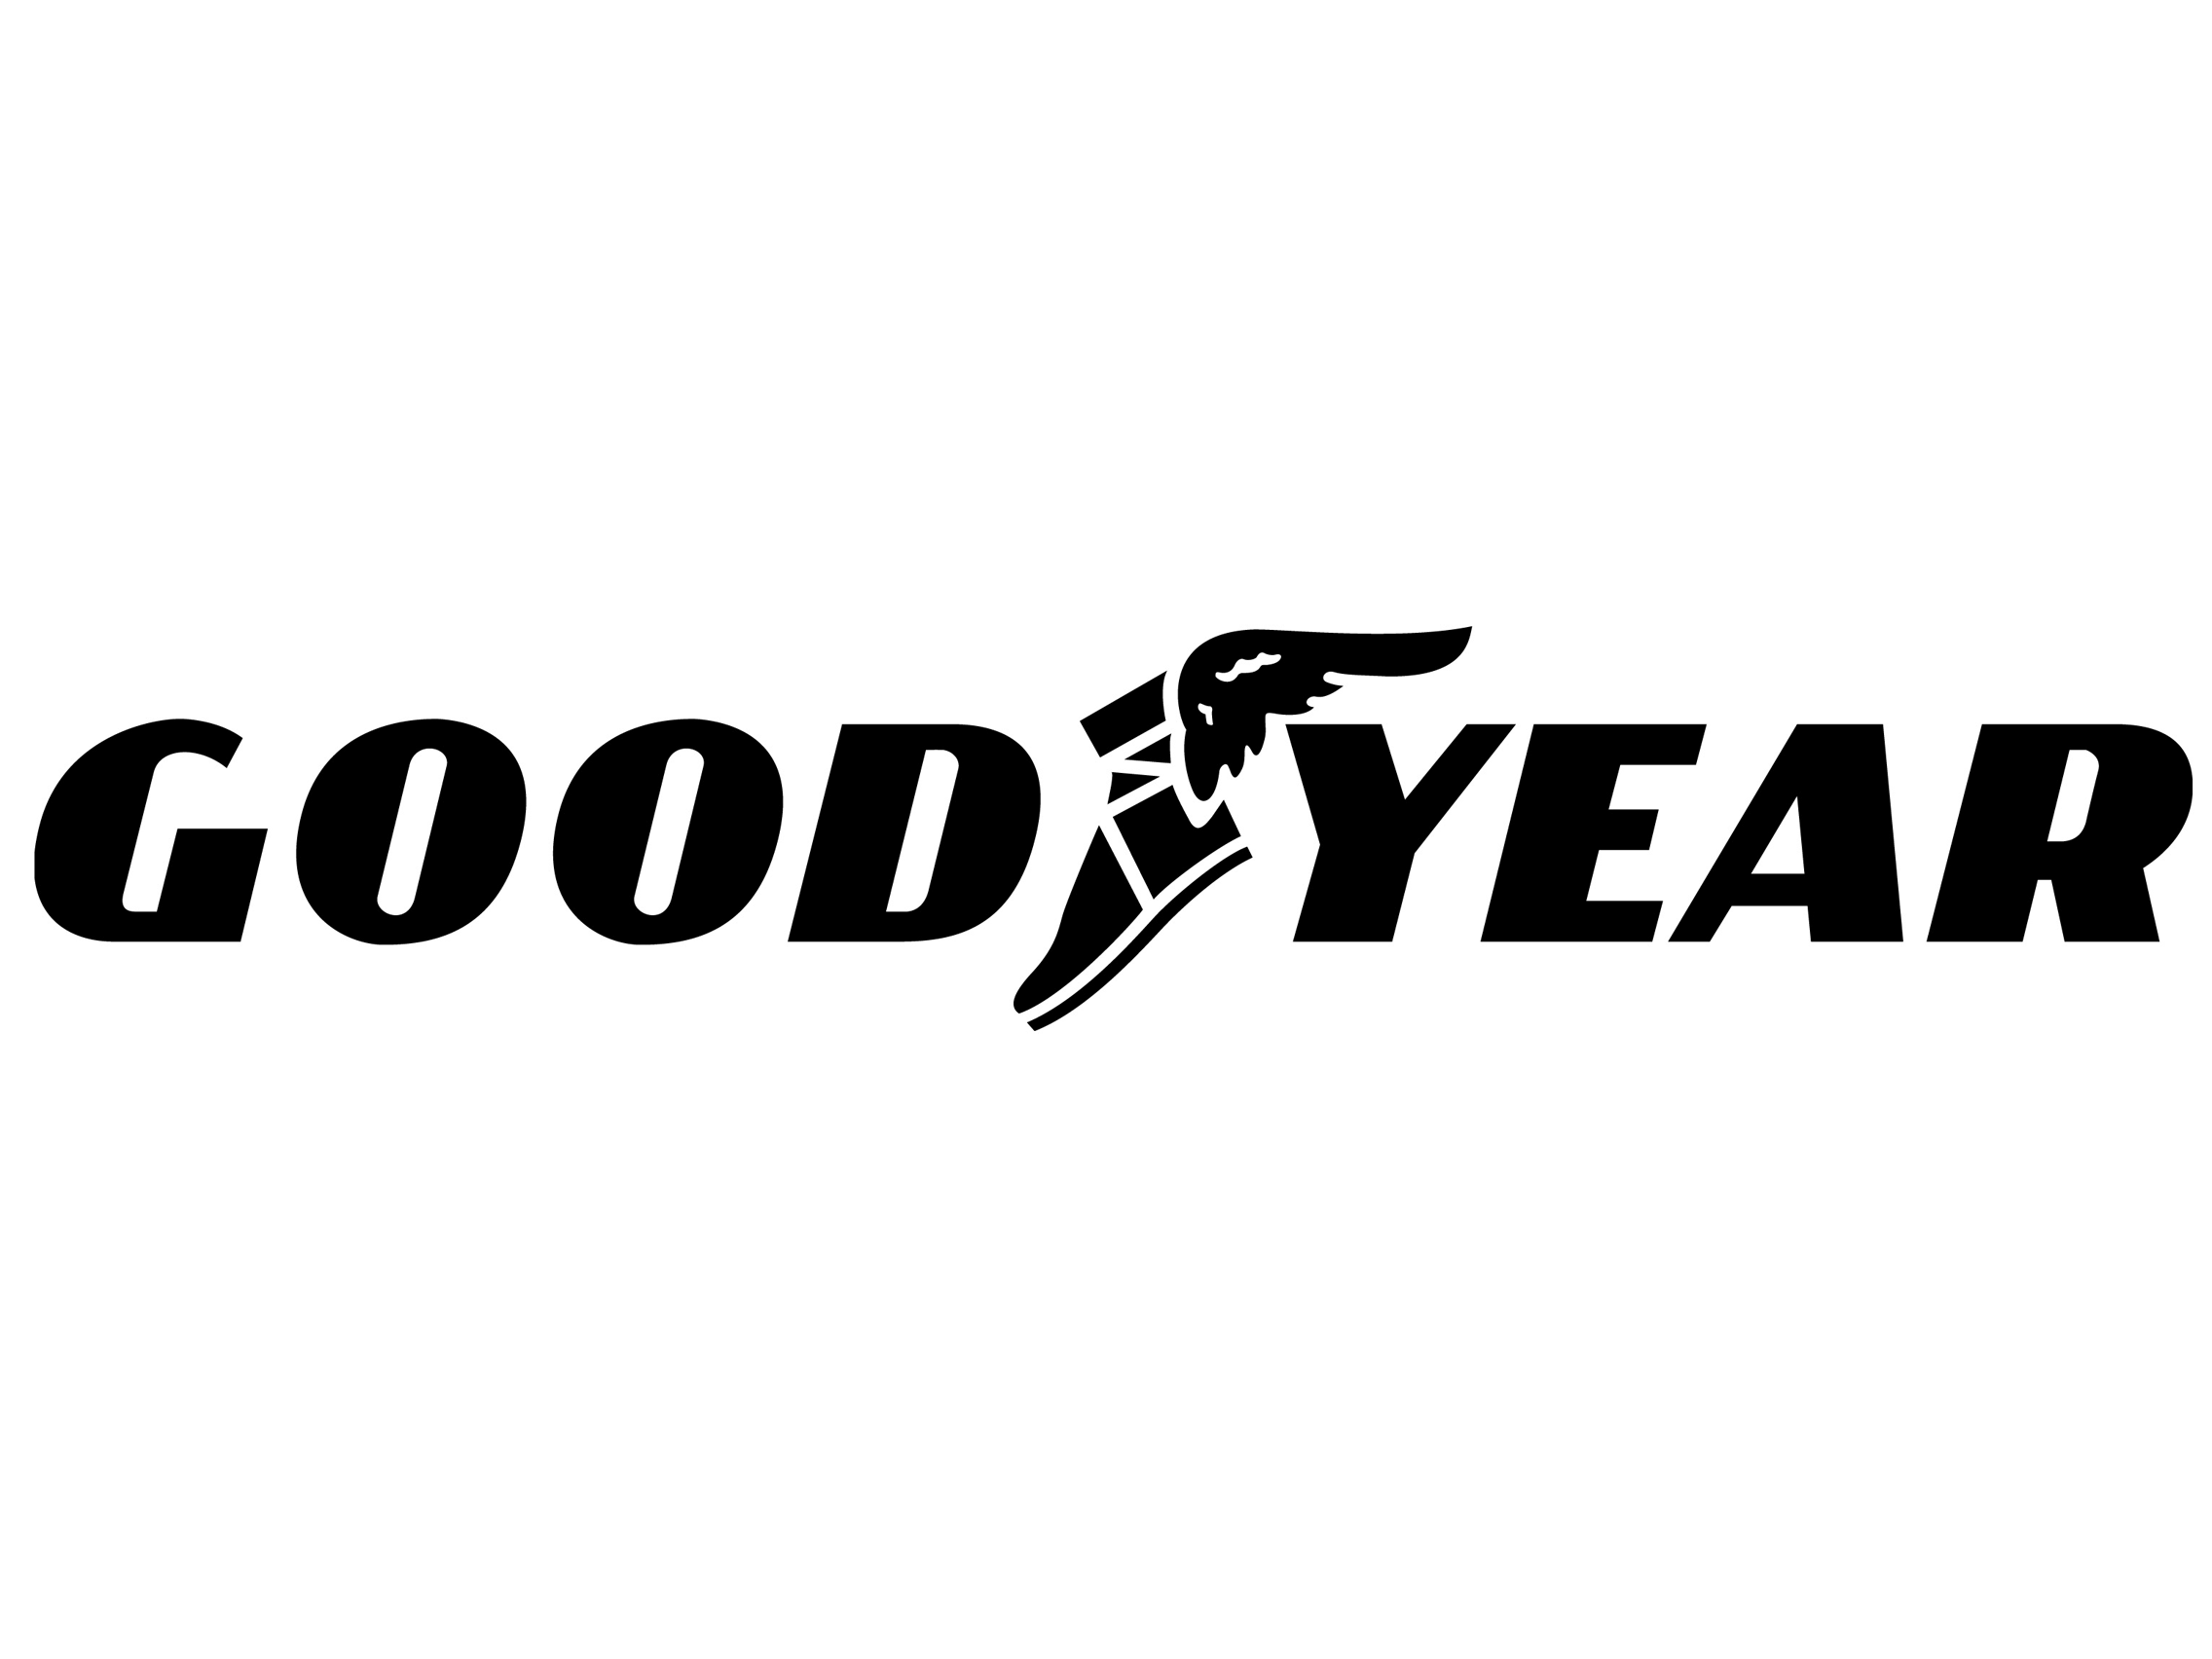 The Goodyear logo is a yellow Wingfoot, the Goodyear name